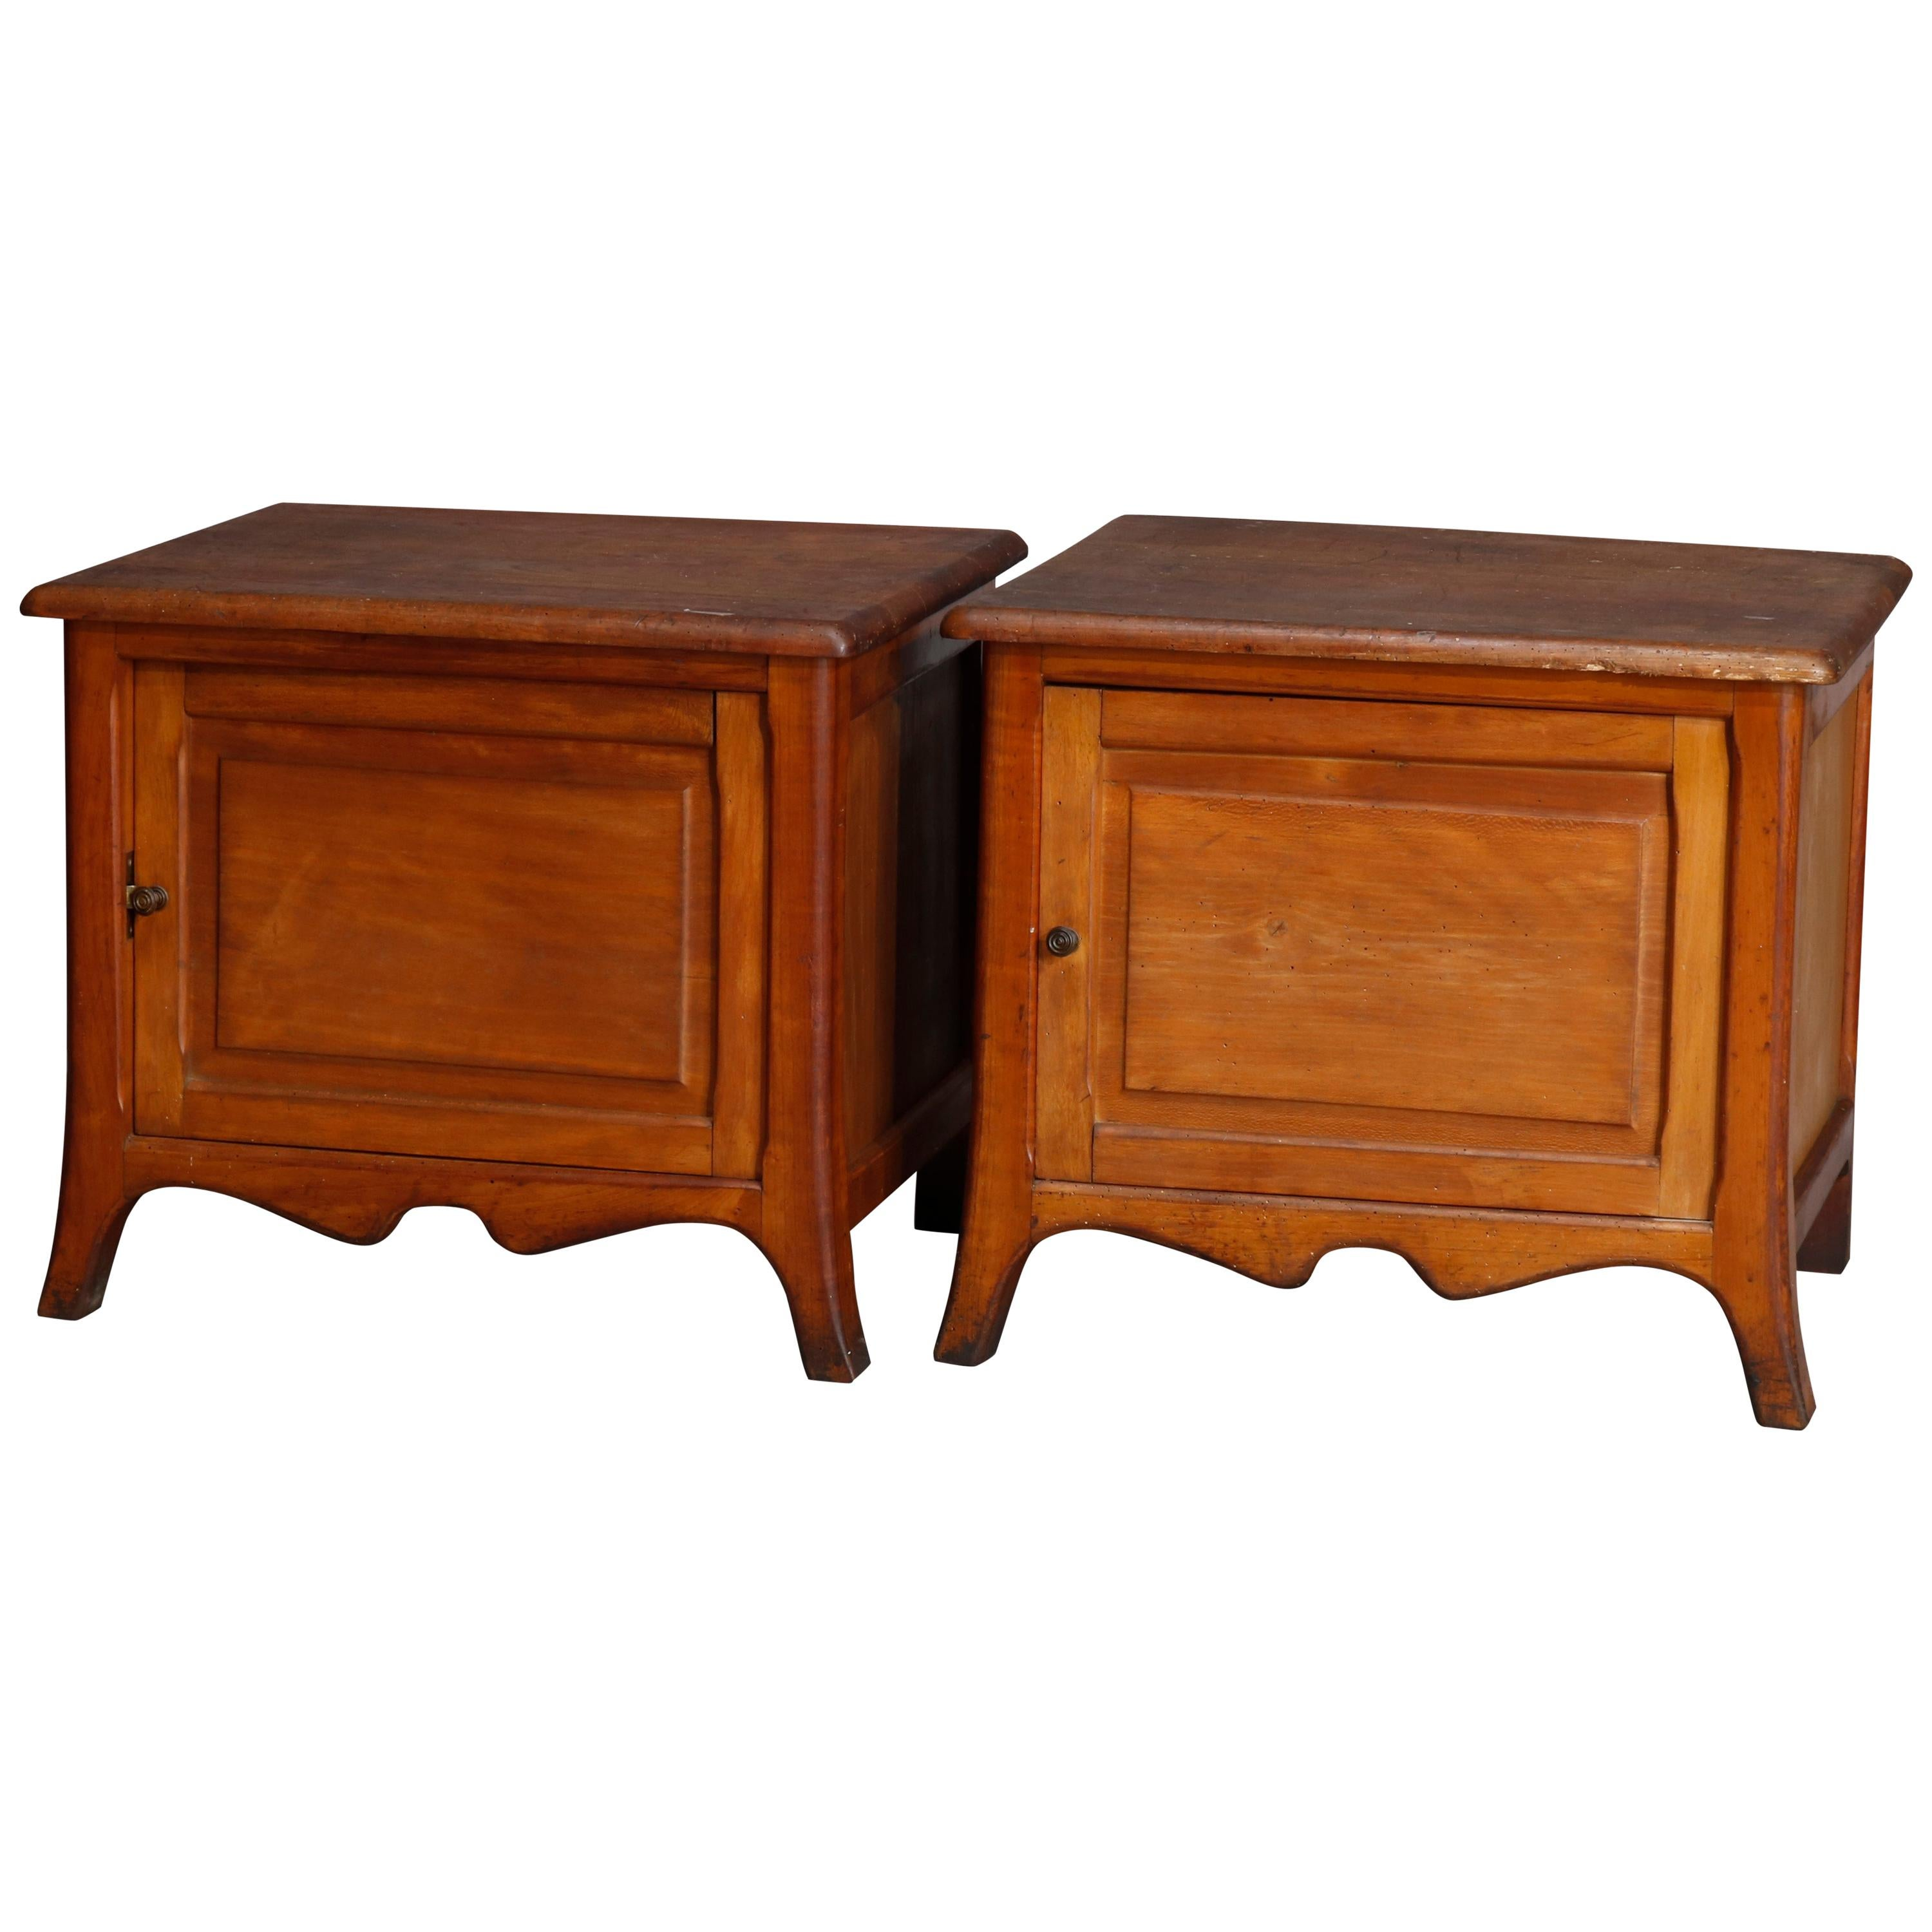 Pair of Vintage Raised Panel Maple Single Door Side Stands Cabinets 20th Century